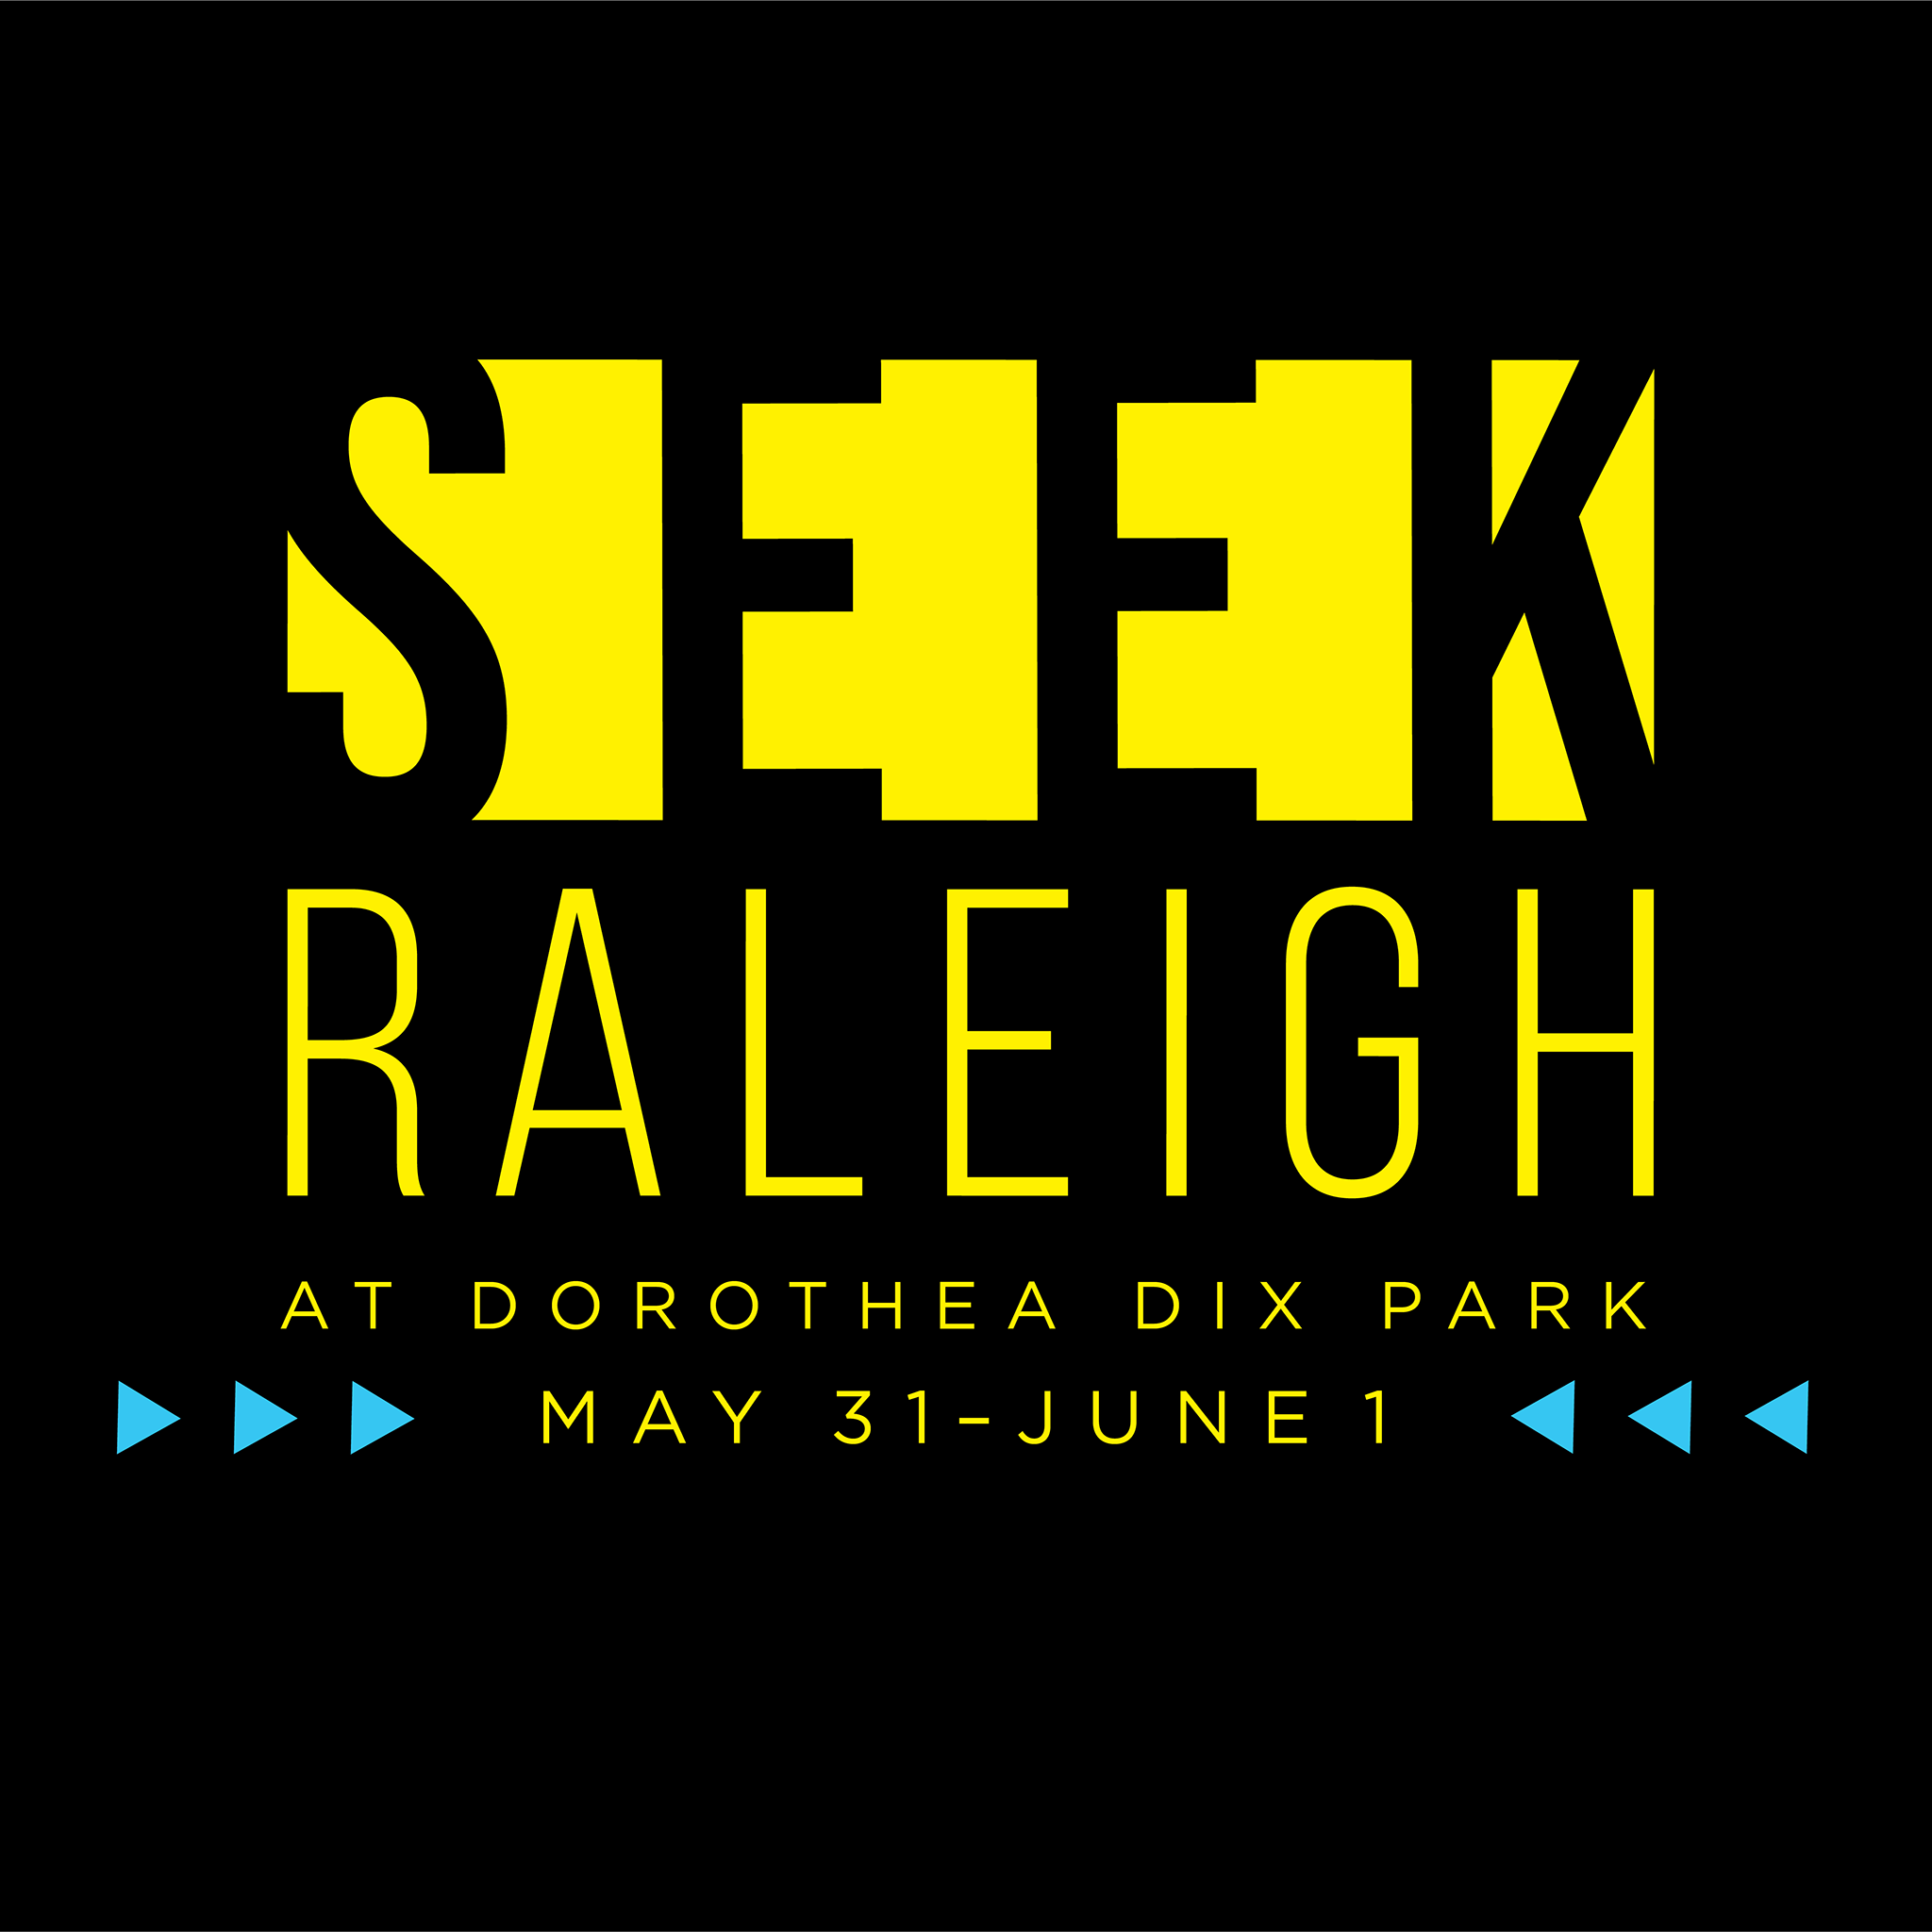 seekraleigh_instagram-3-2048x2048-v2 (1).png